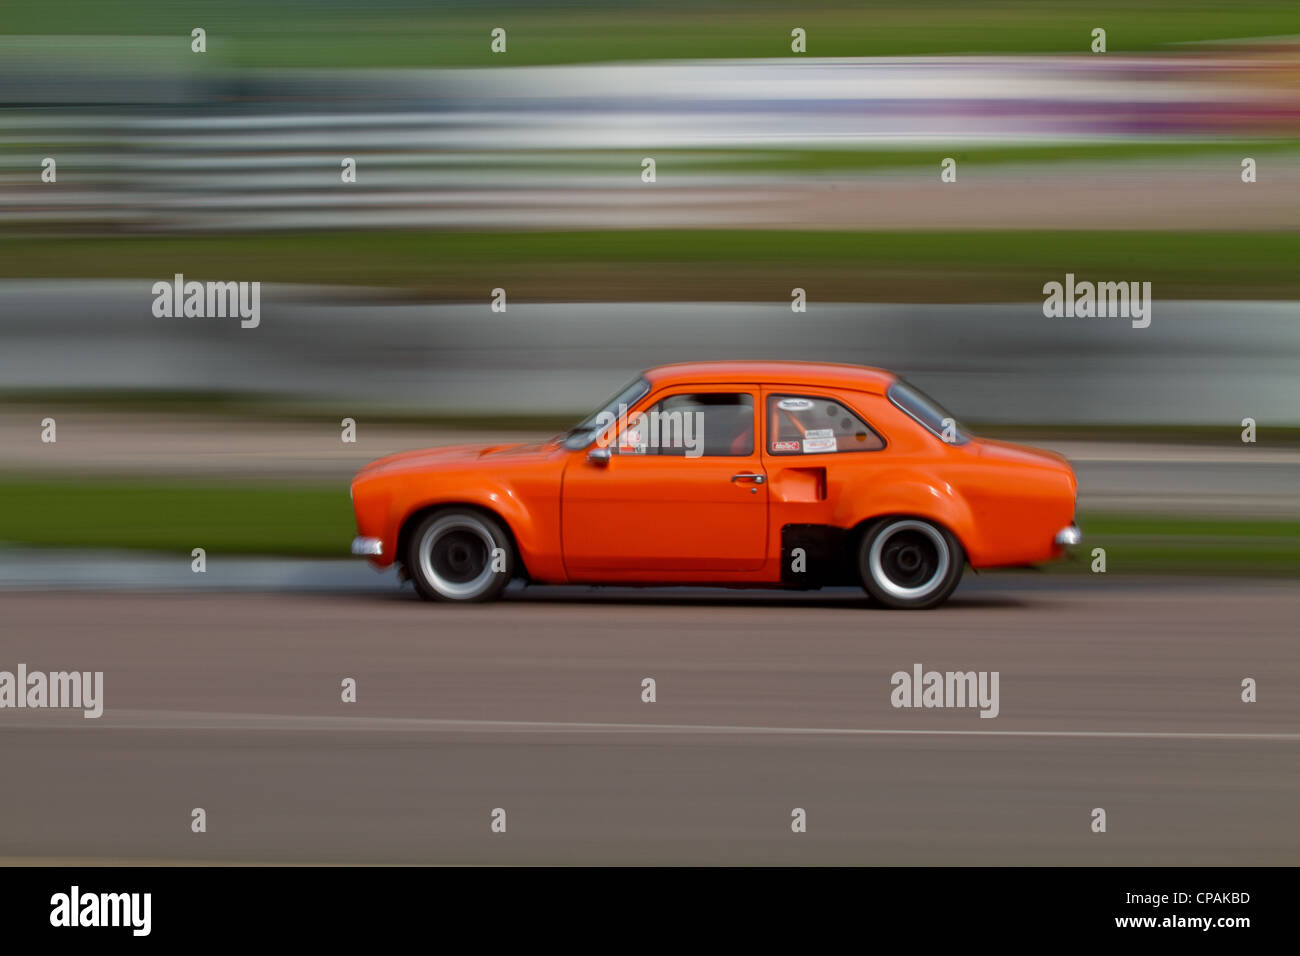 Mk1 Ford Escort Stock Photos & Mk1 Ford Escort Stock Images - Alamy